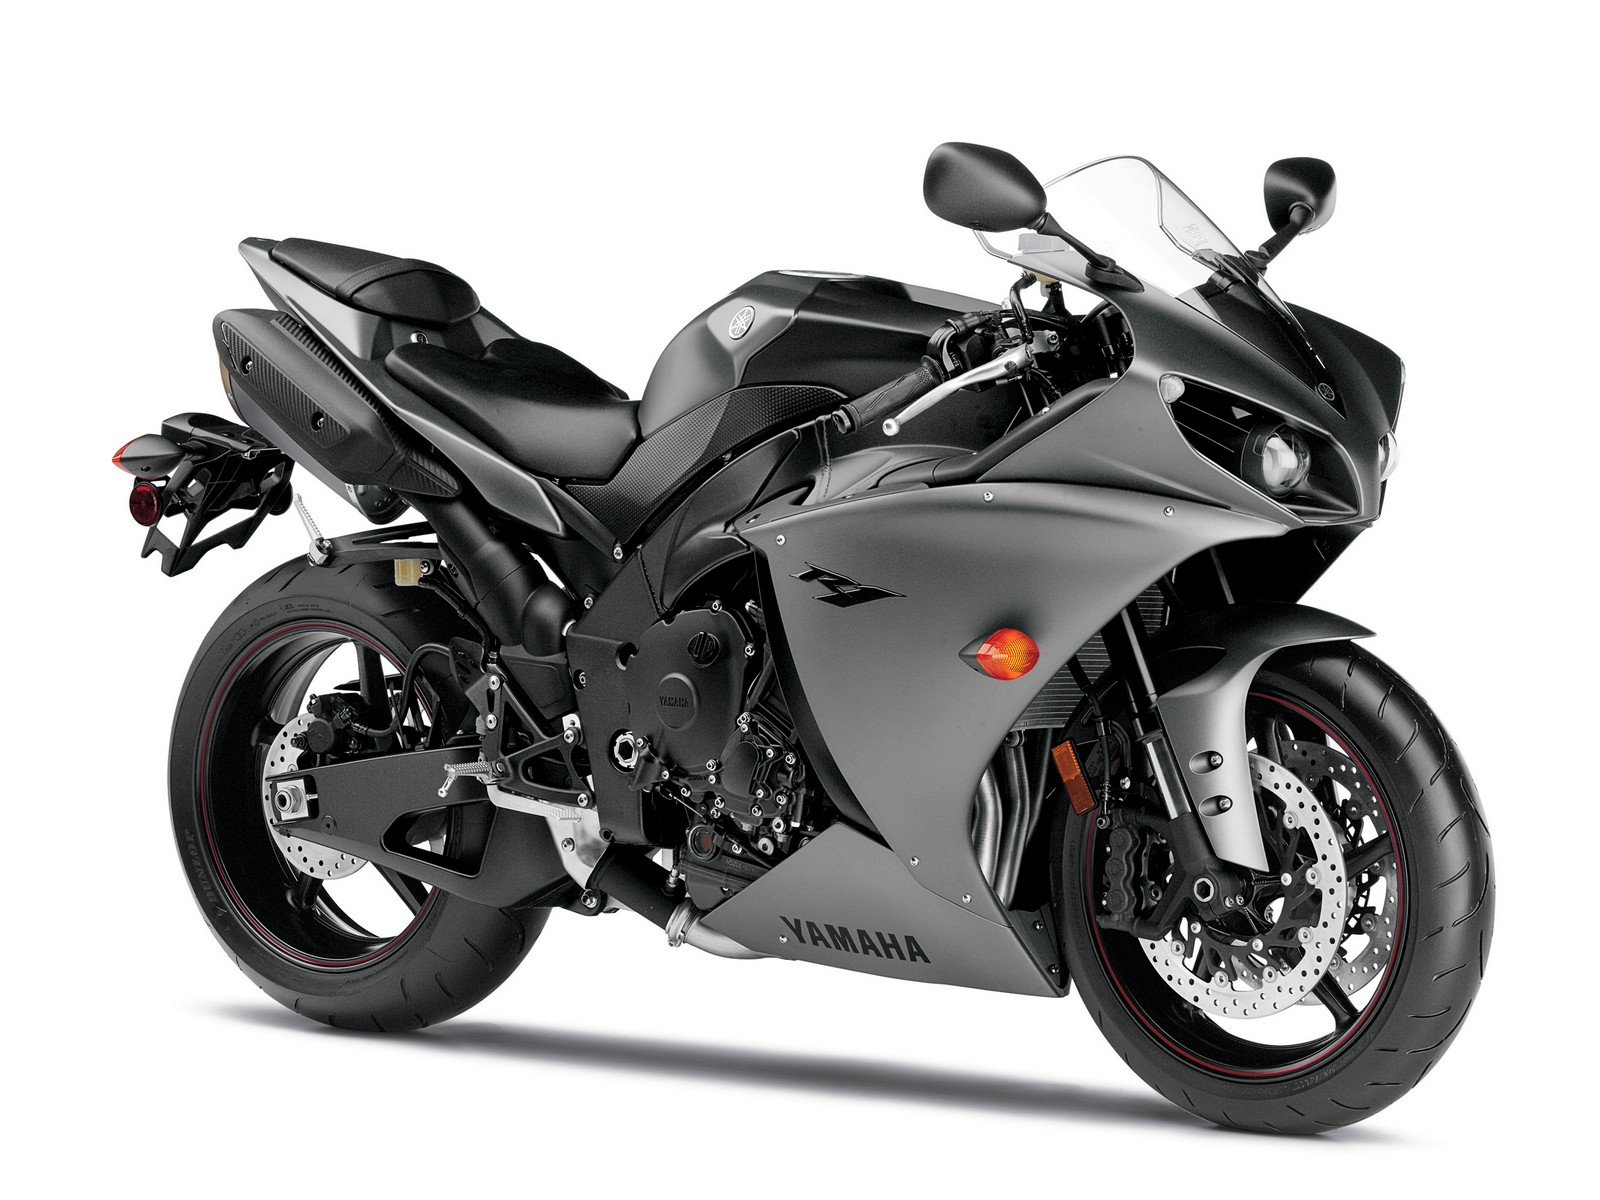 2013 yamaha yzf r1 review gallery top speed. Black Bedroom Furniture Sets. Home Design Ideas